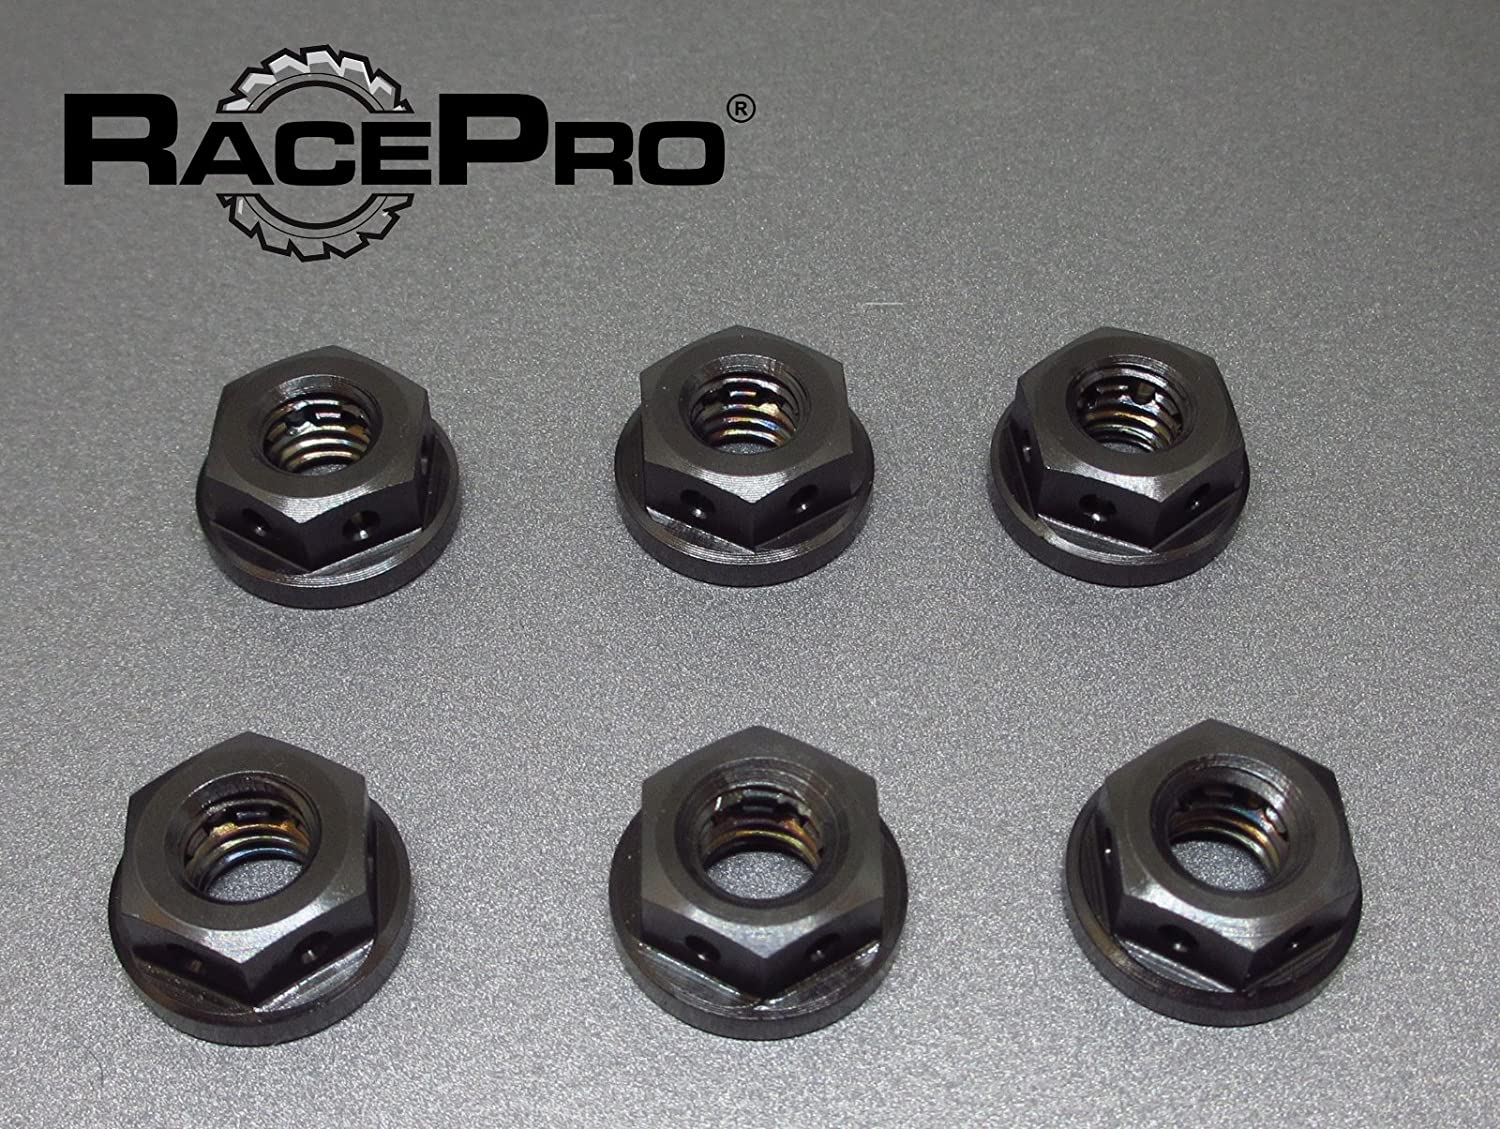 Drilled 6x Black Titanium Sprocket Nuts M10 x 1.25